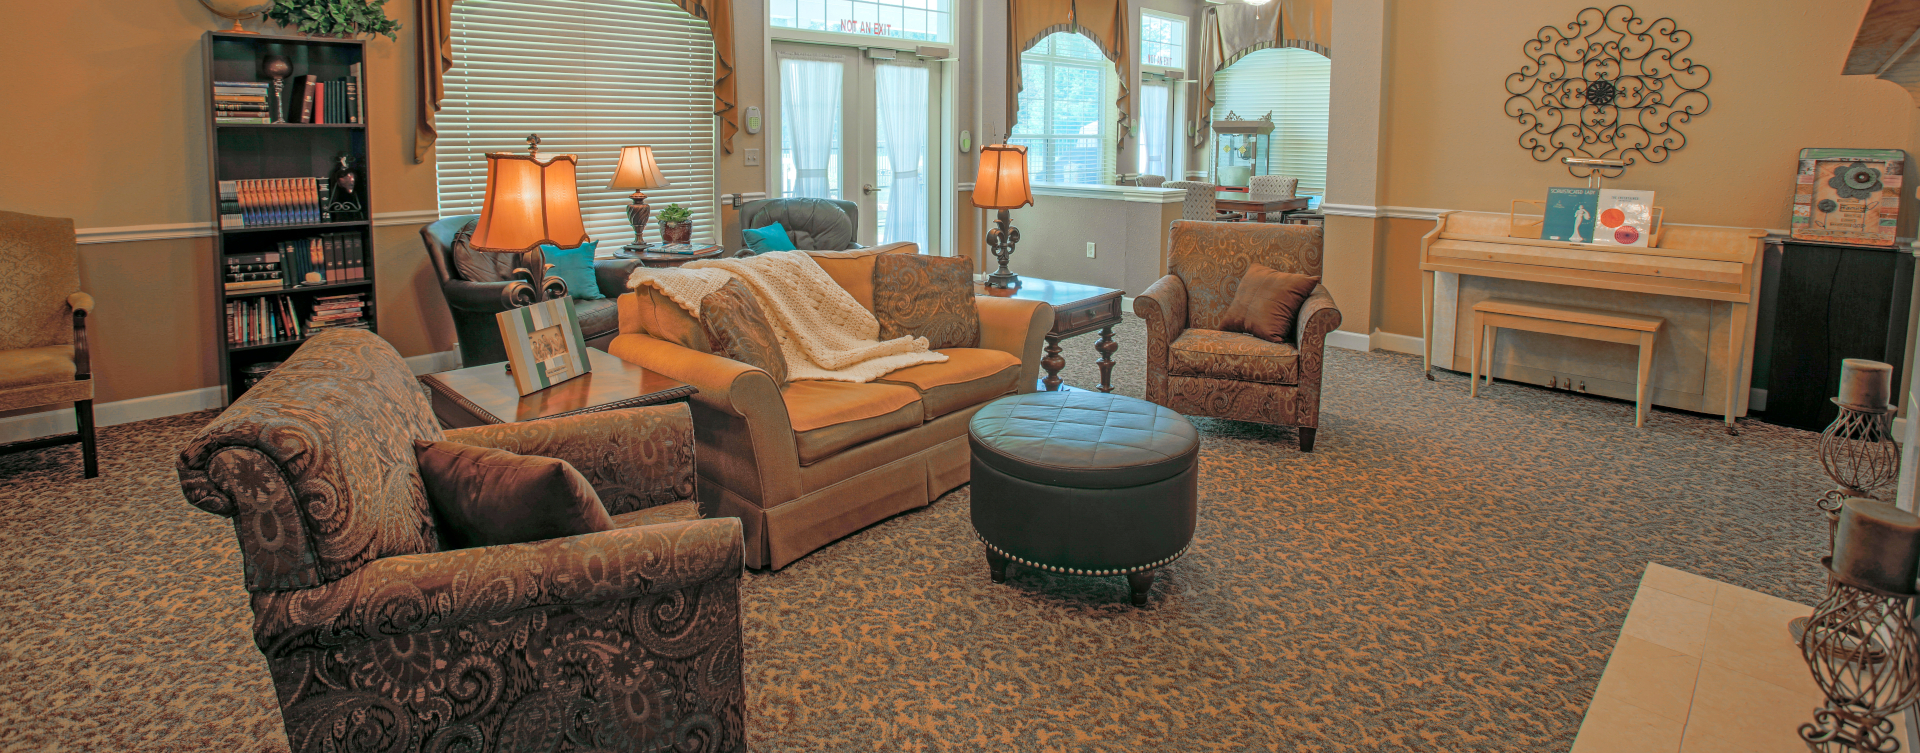 Enjoy a good book in the living room at Bickford of Wabash